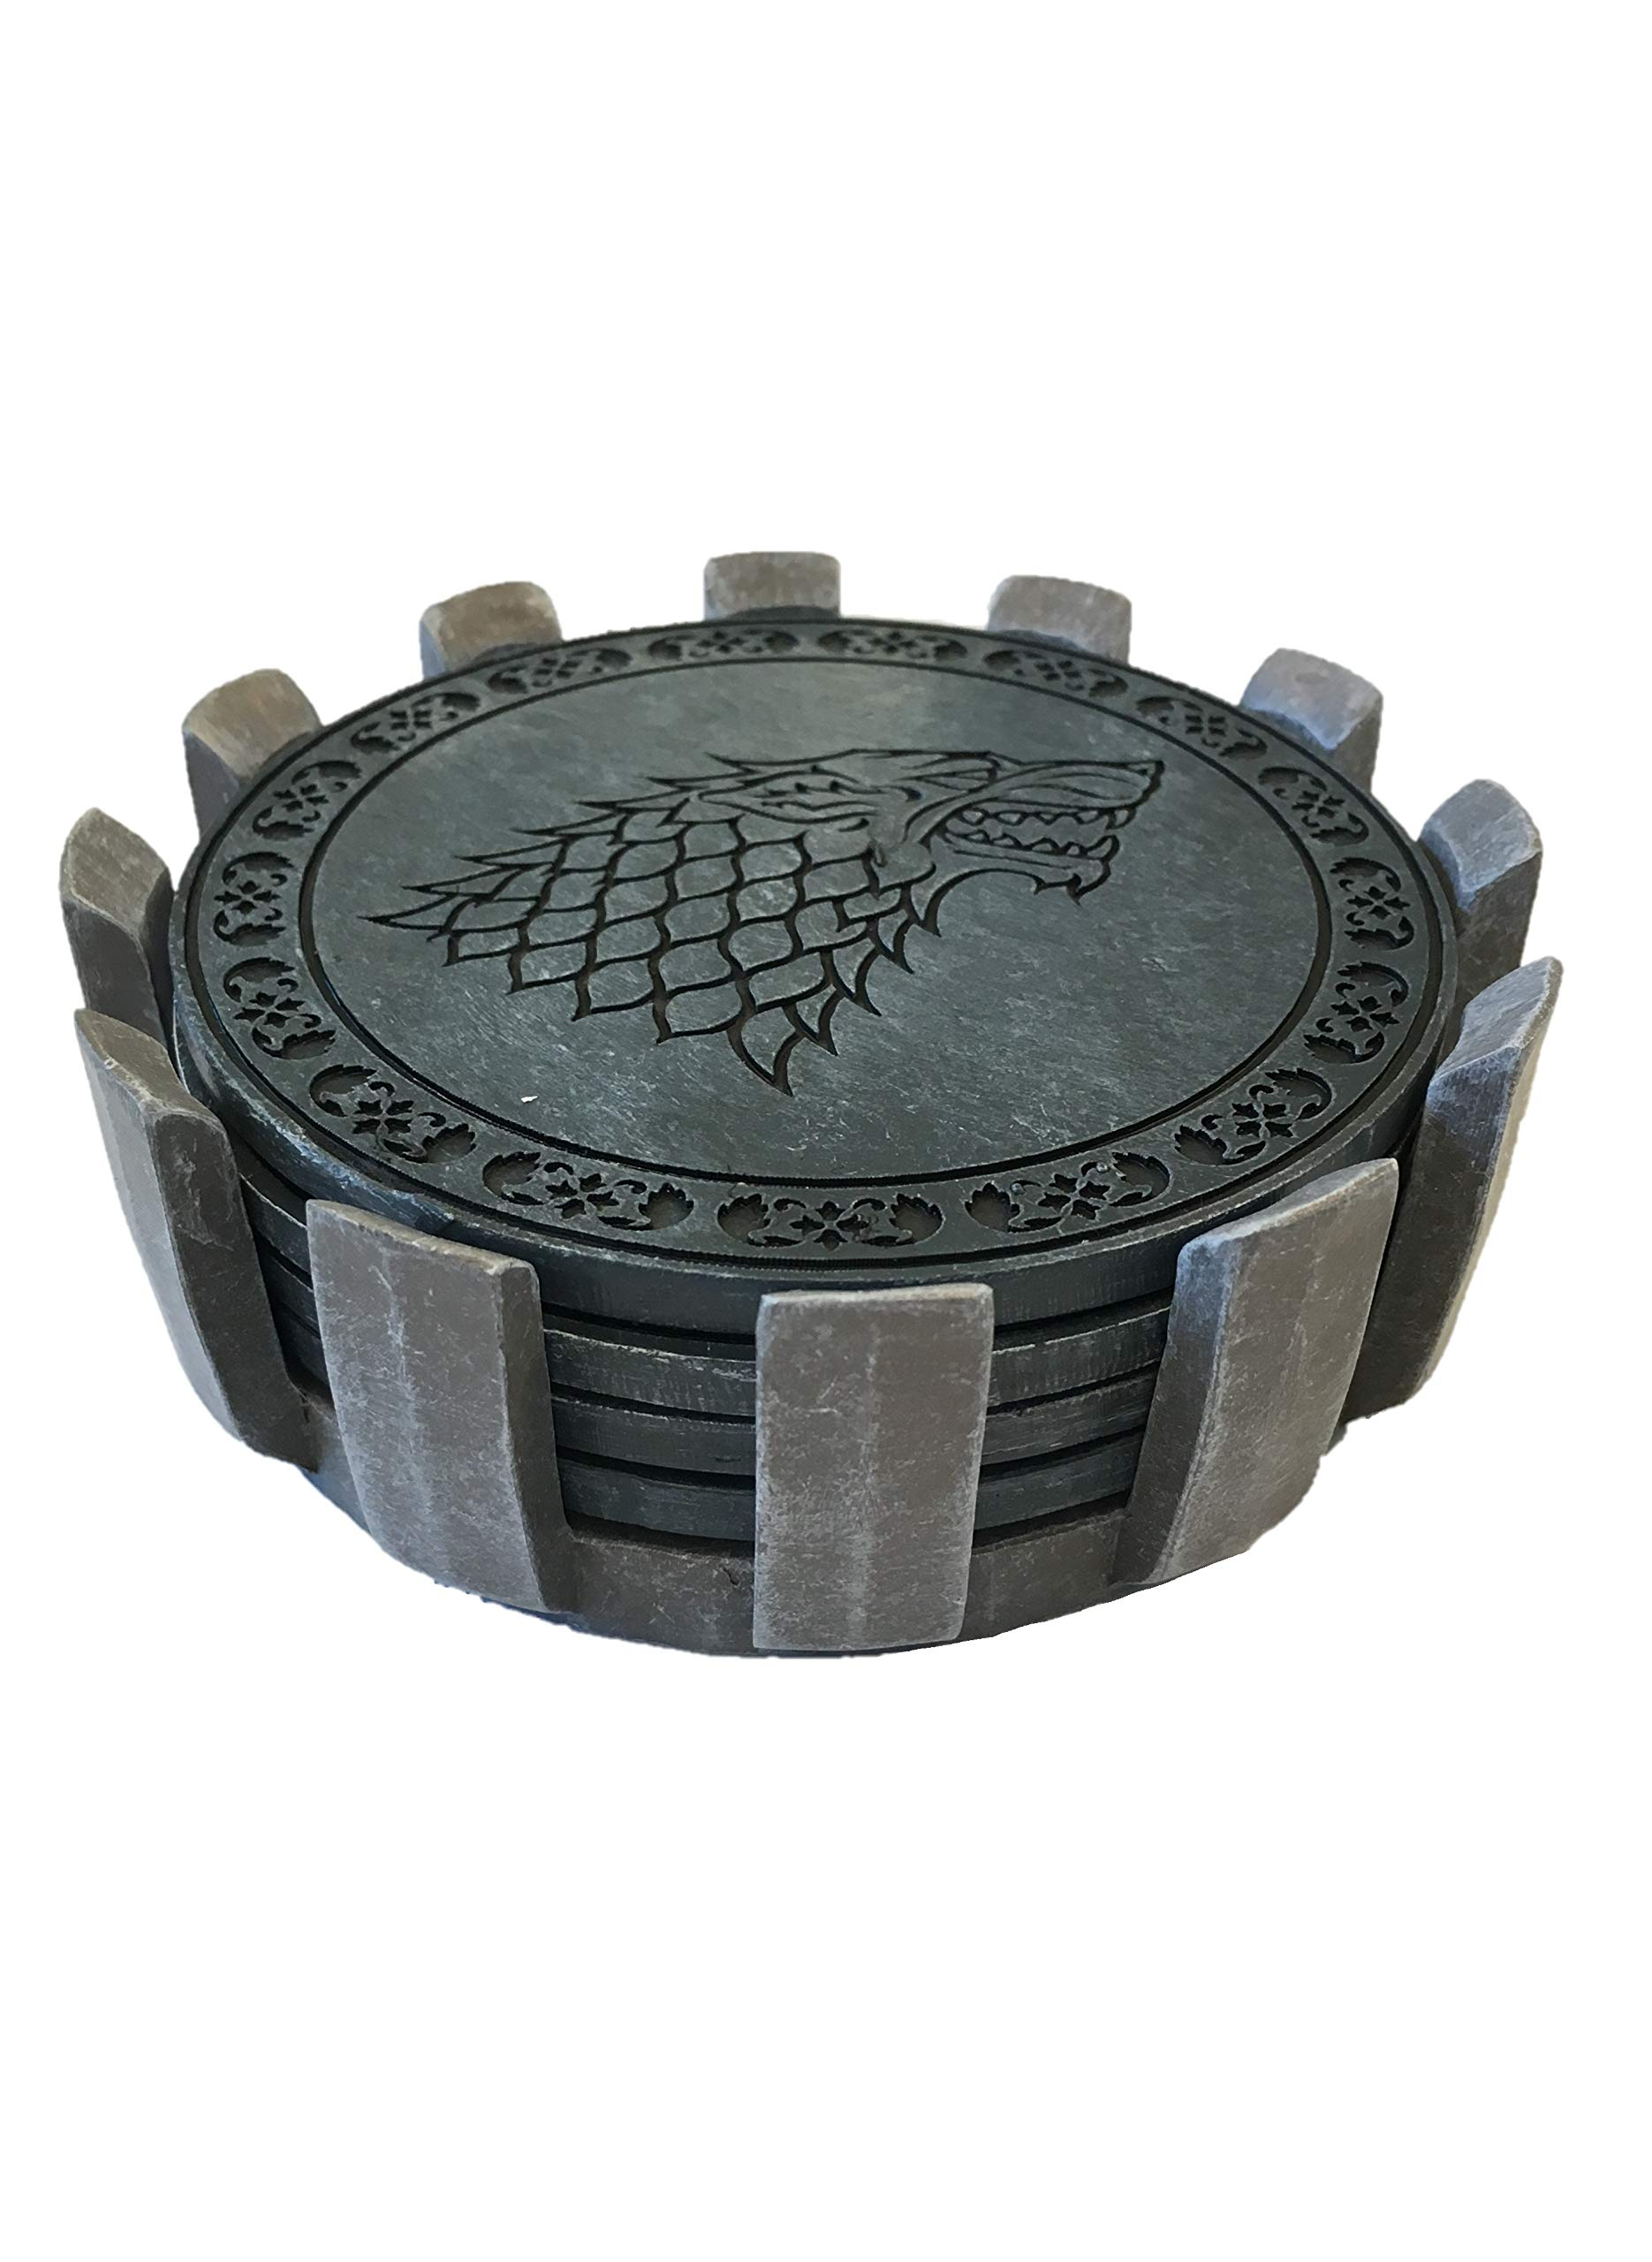 Game of Thrones Drink Coaster Set with Holder- House Sigil Beverage Coasters - Set of Four Faux Sandstone Coasters- Cork Backed by Rabbit Tanaka (Image #2)